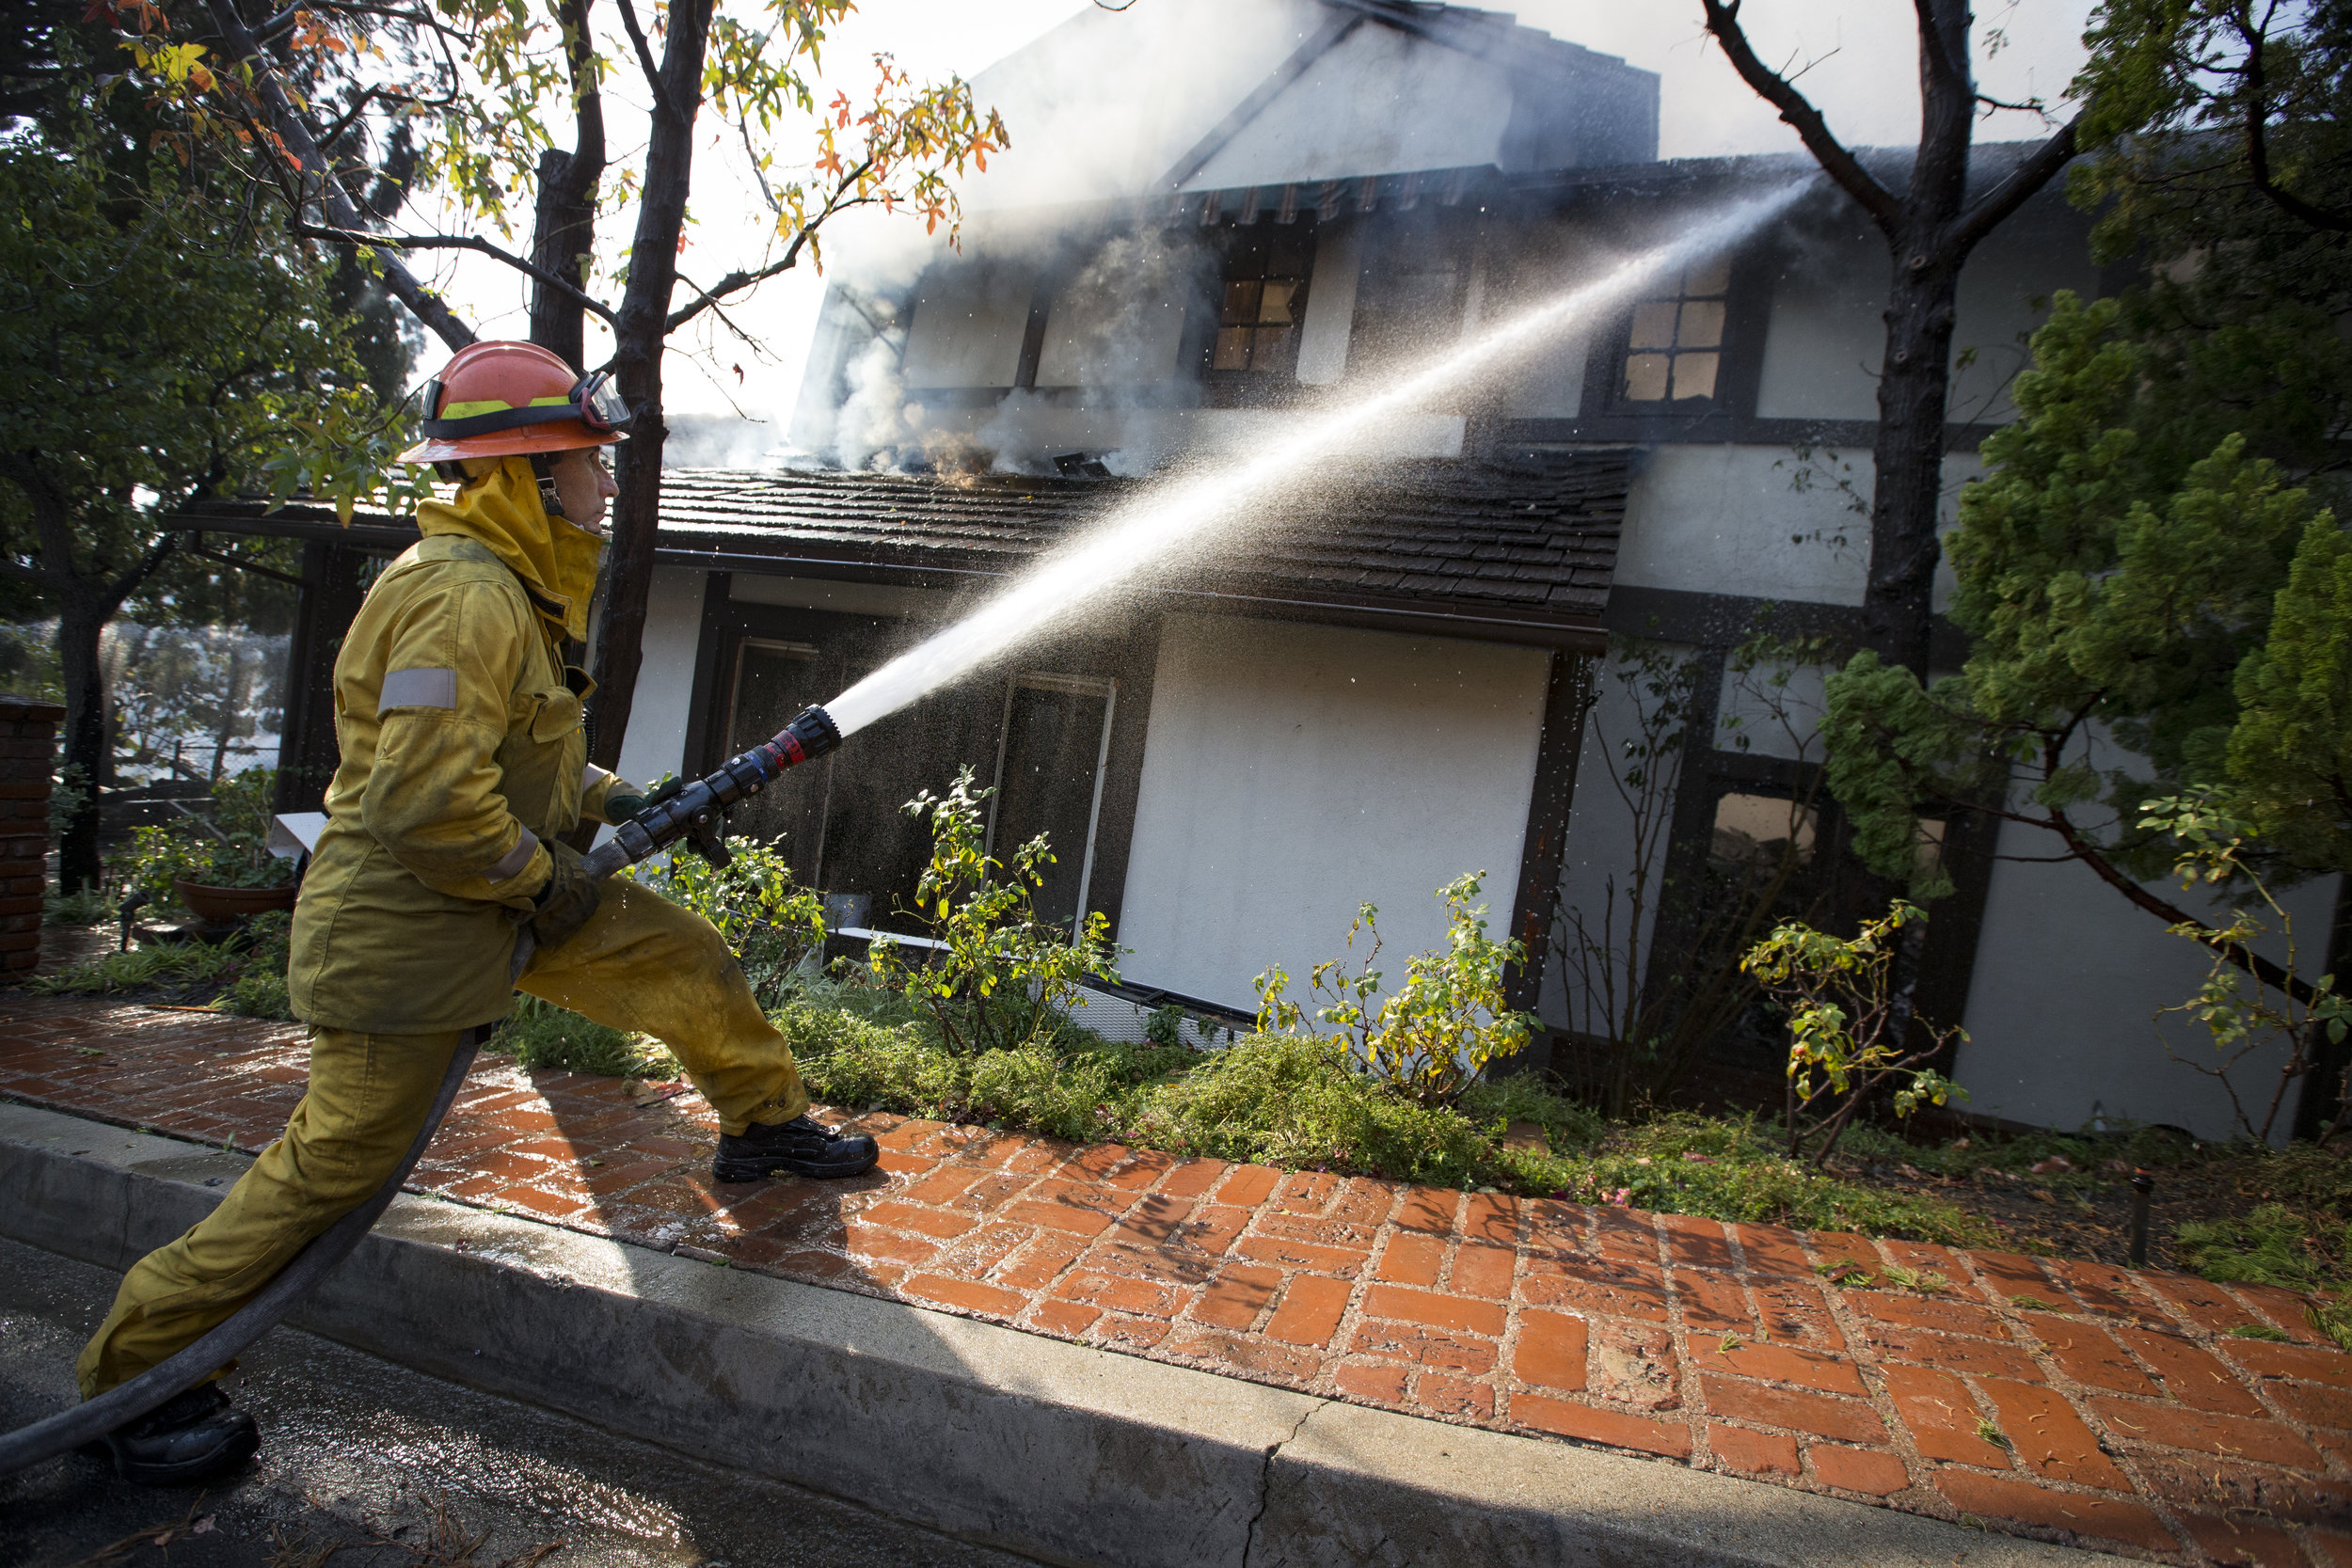 Los Angeles Fire Department engine company 71 firefighter David Valadez readies a hose to put out the flames of a burning house at The Skirball Fire which shut down the 405 north and burned 450 acres of land on Dec.6, 2017 in west Los Angeles, Calif. (Photo by Daniel Bowyer)